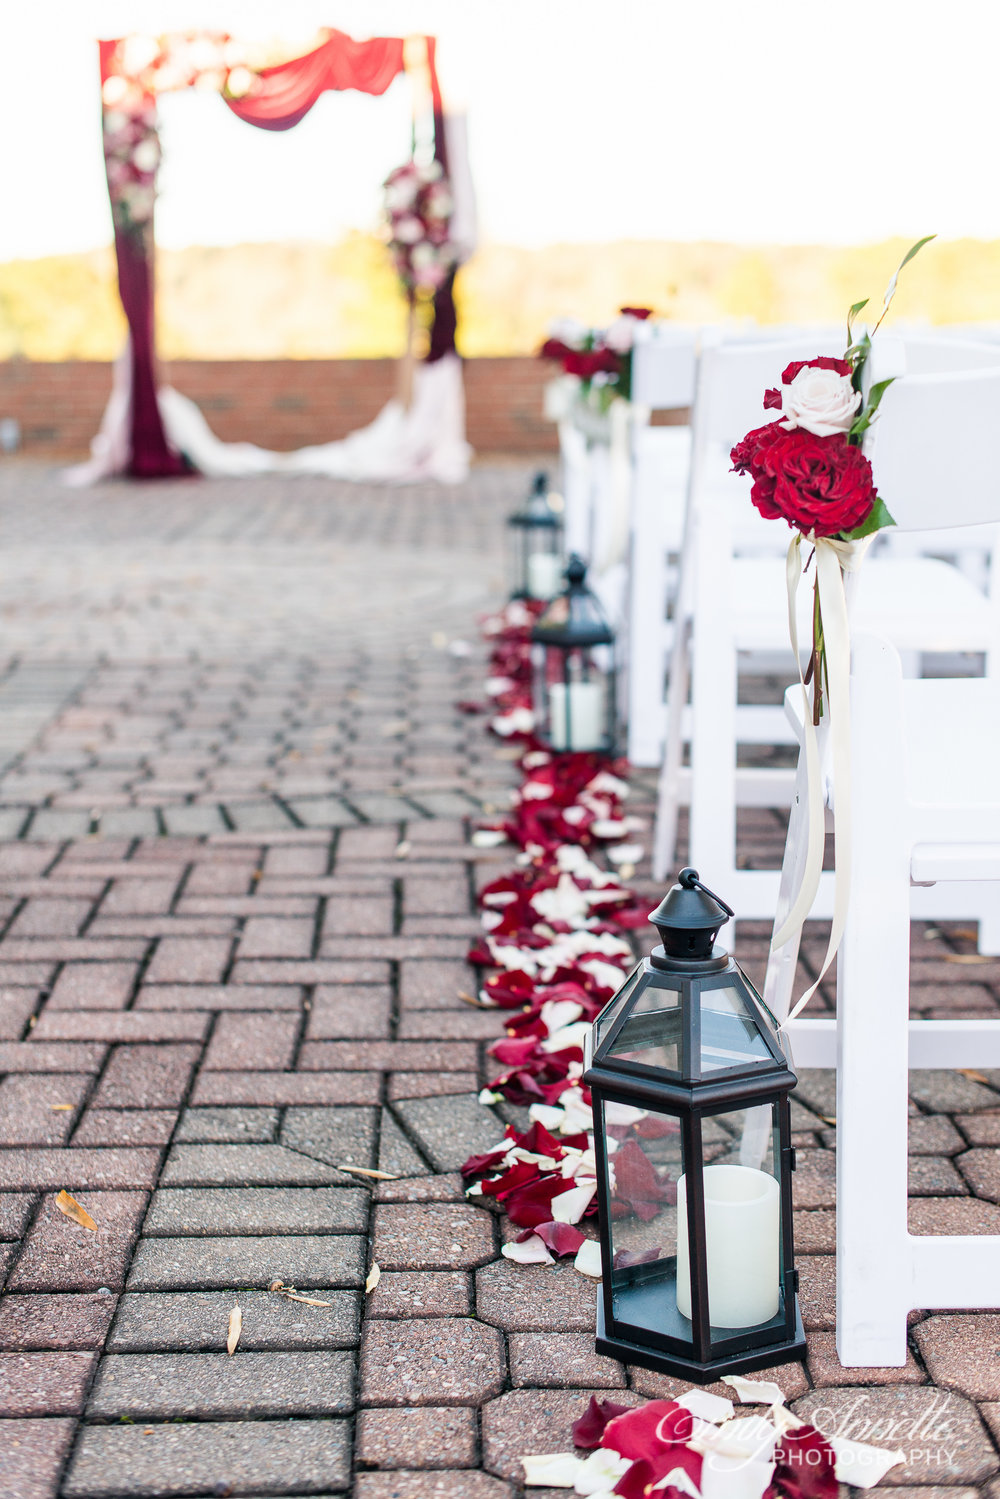 Ceremony site decorations including lanterns, rose petals, and flower bouquets on chairs at Willow Oaks Country Club in Richmond, Virginia